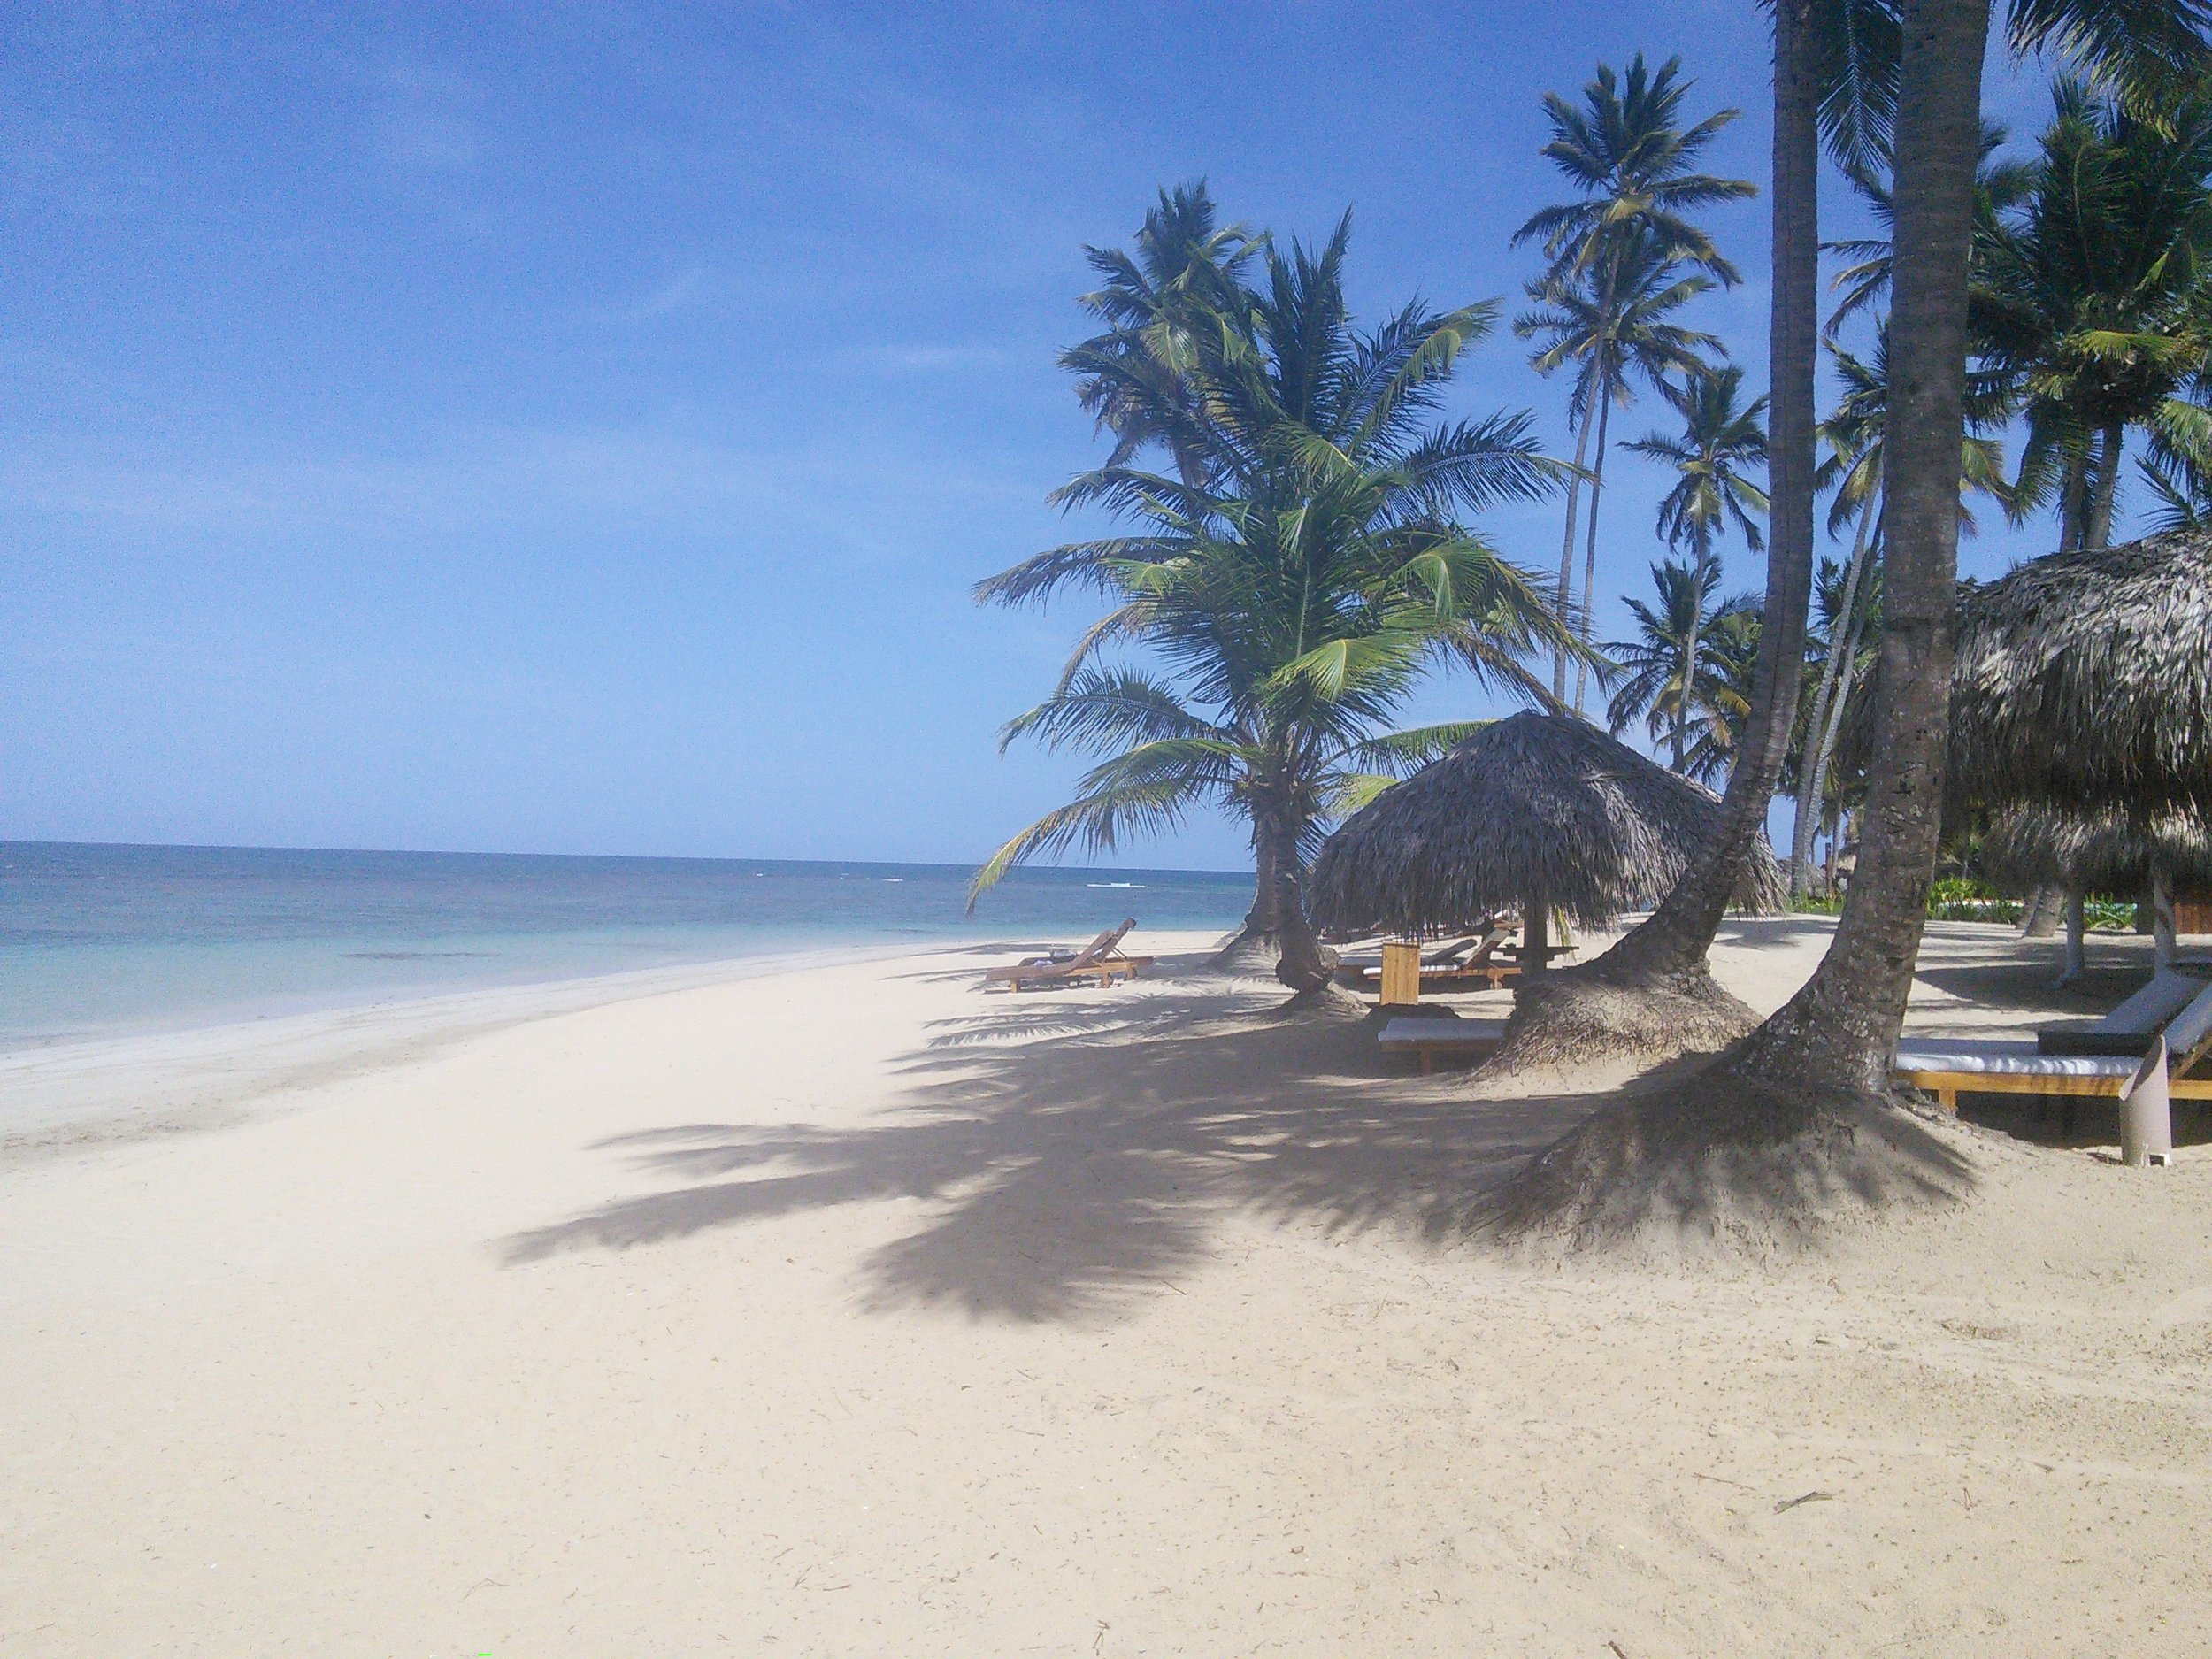 Relaxation Vacation at Zoetry Beach in Punta Cana, Jeri Donovan of Well Traveled